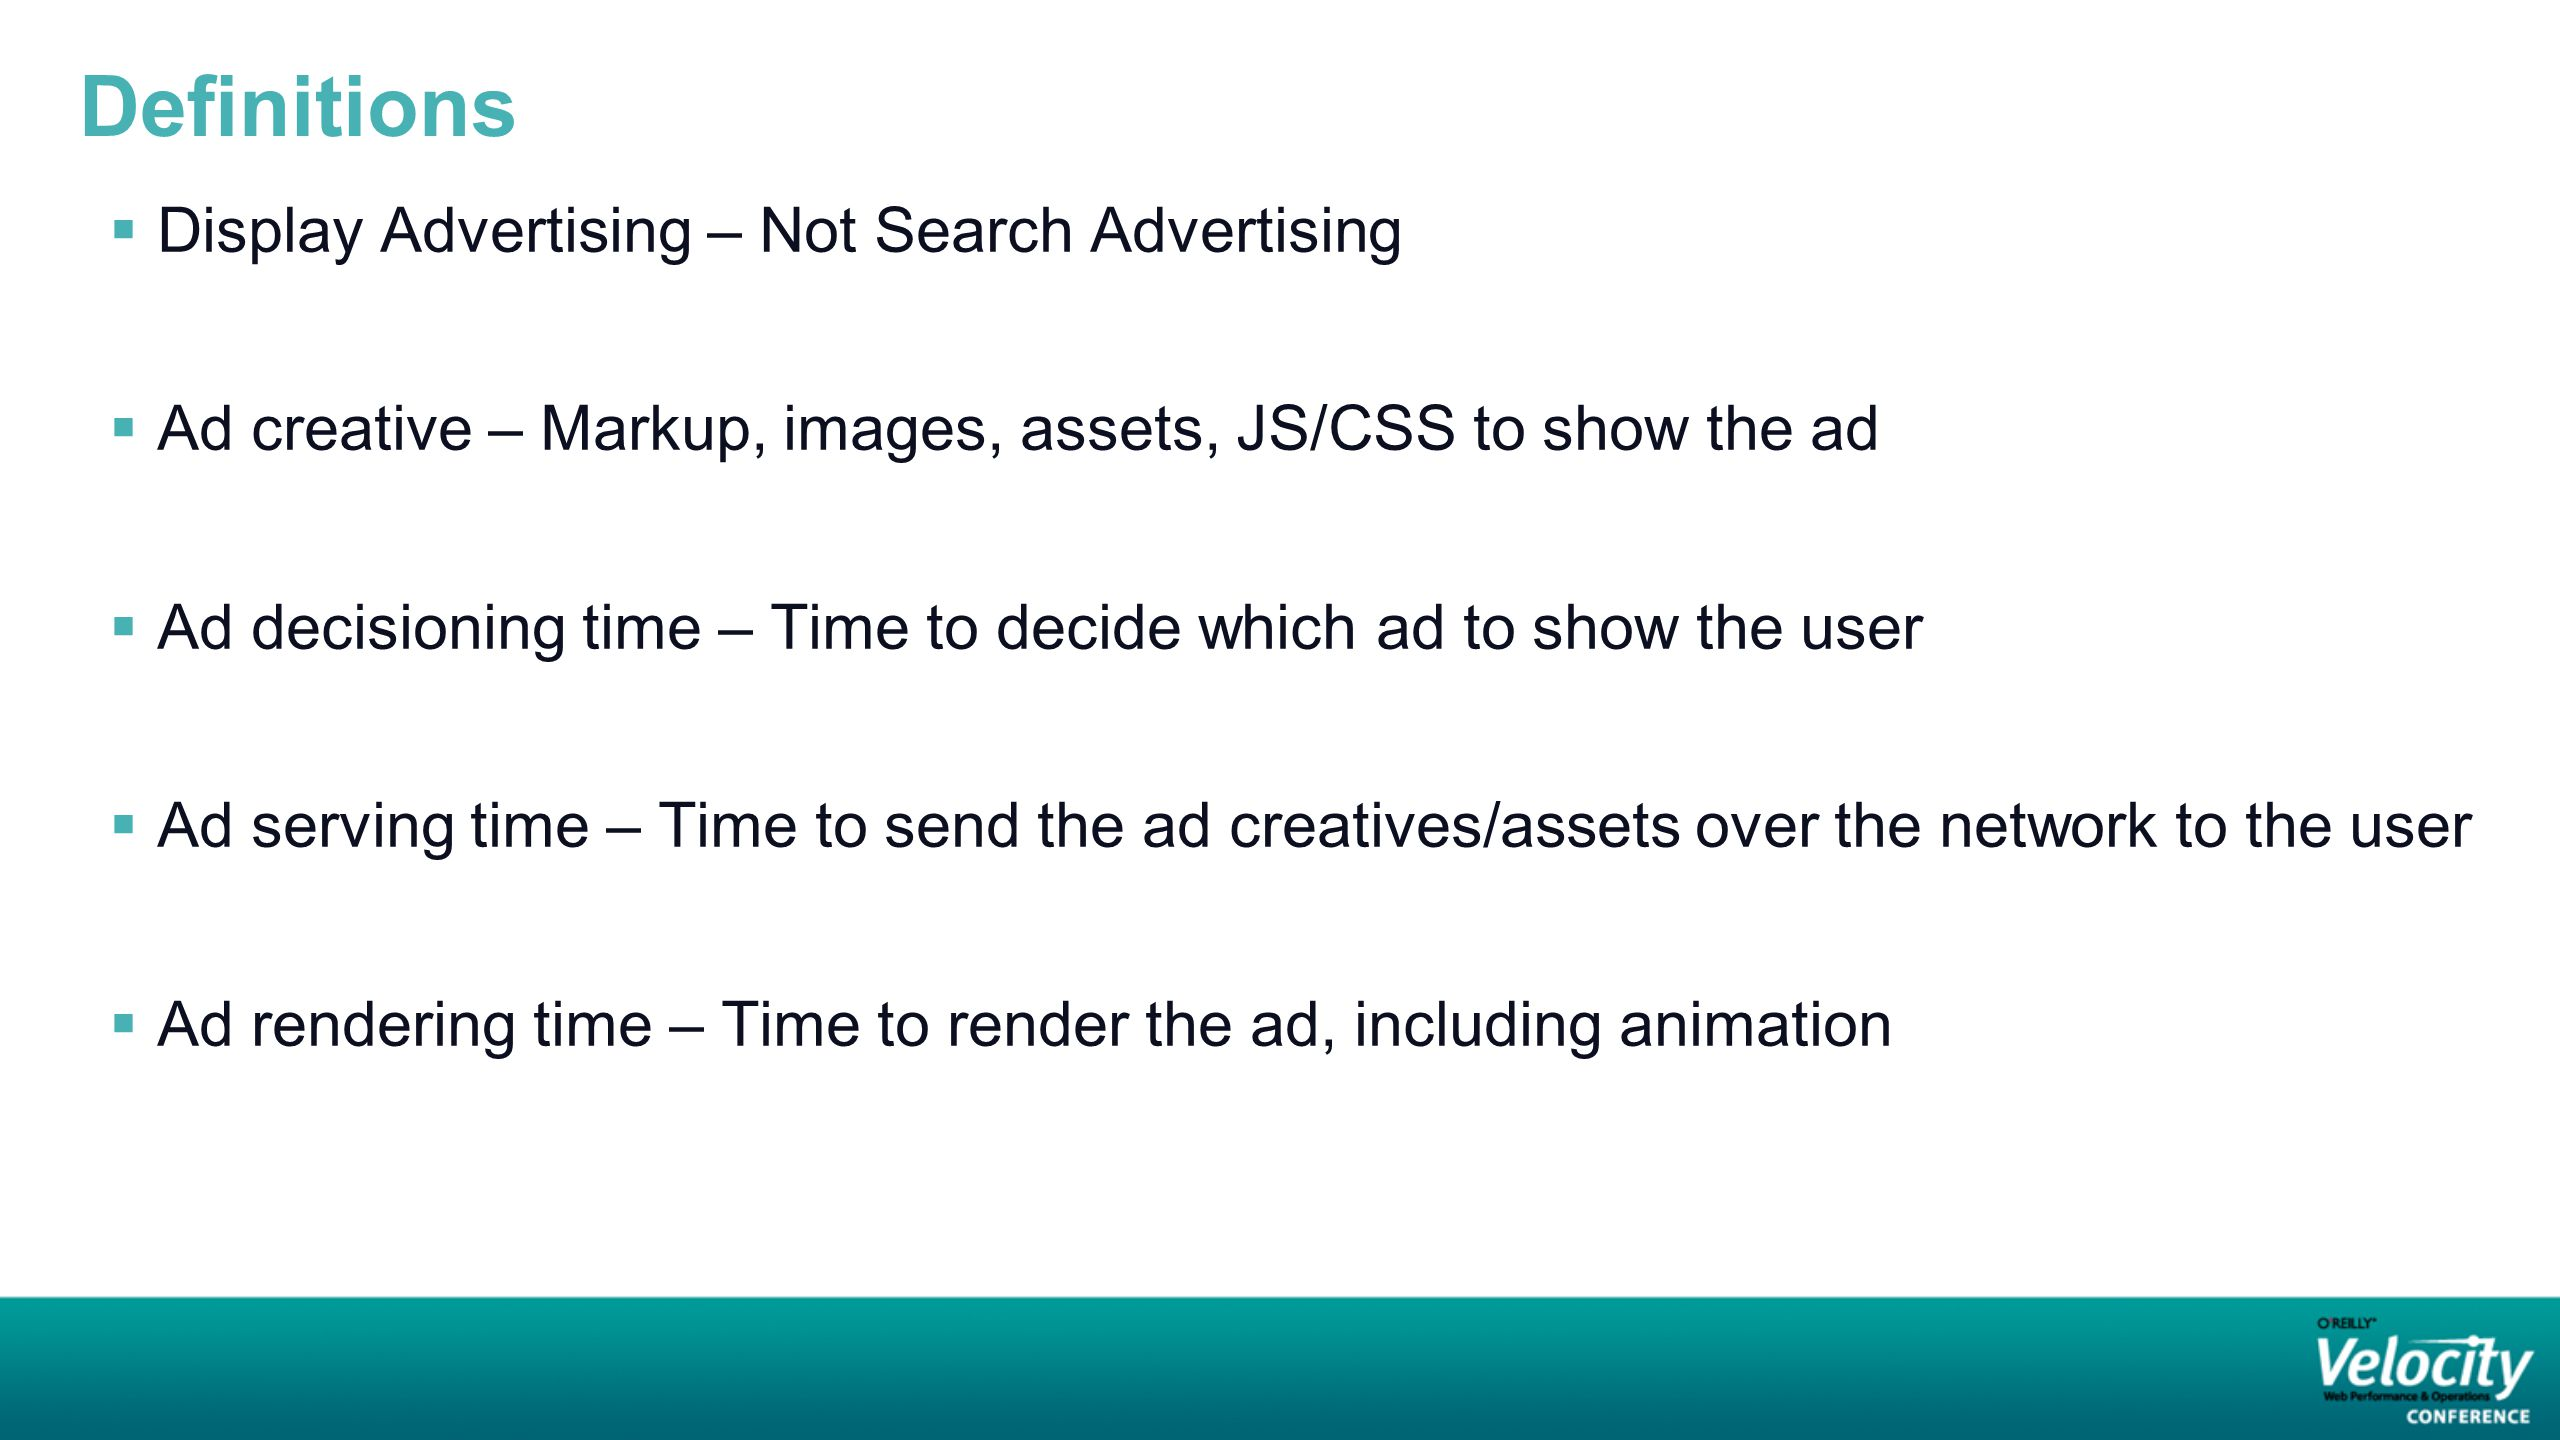 Definitions  Display Advertising – Not Search Advertising  Ad creative – Markup, images, assets, JS/CSS to show the ad  Ad decisioning time – Time to decide which ad to show the user  Ad serving time – Time to send the ad creatives/assets over the network to the user  Ad rendering time – Time to render the ad, including animation